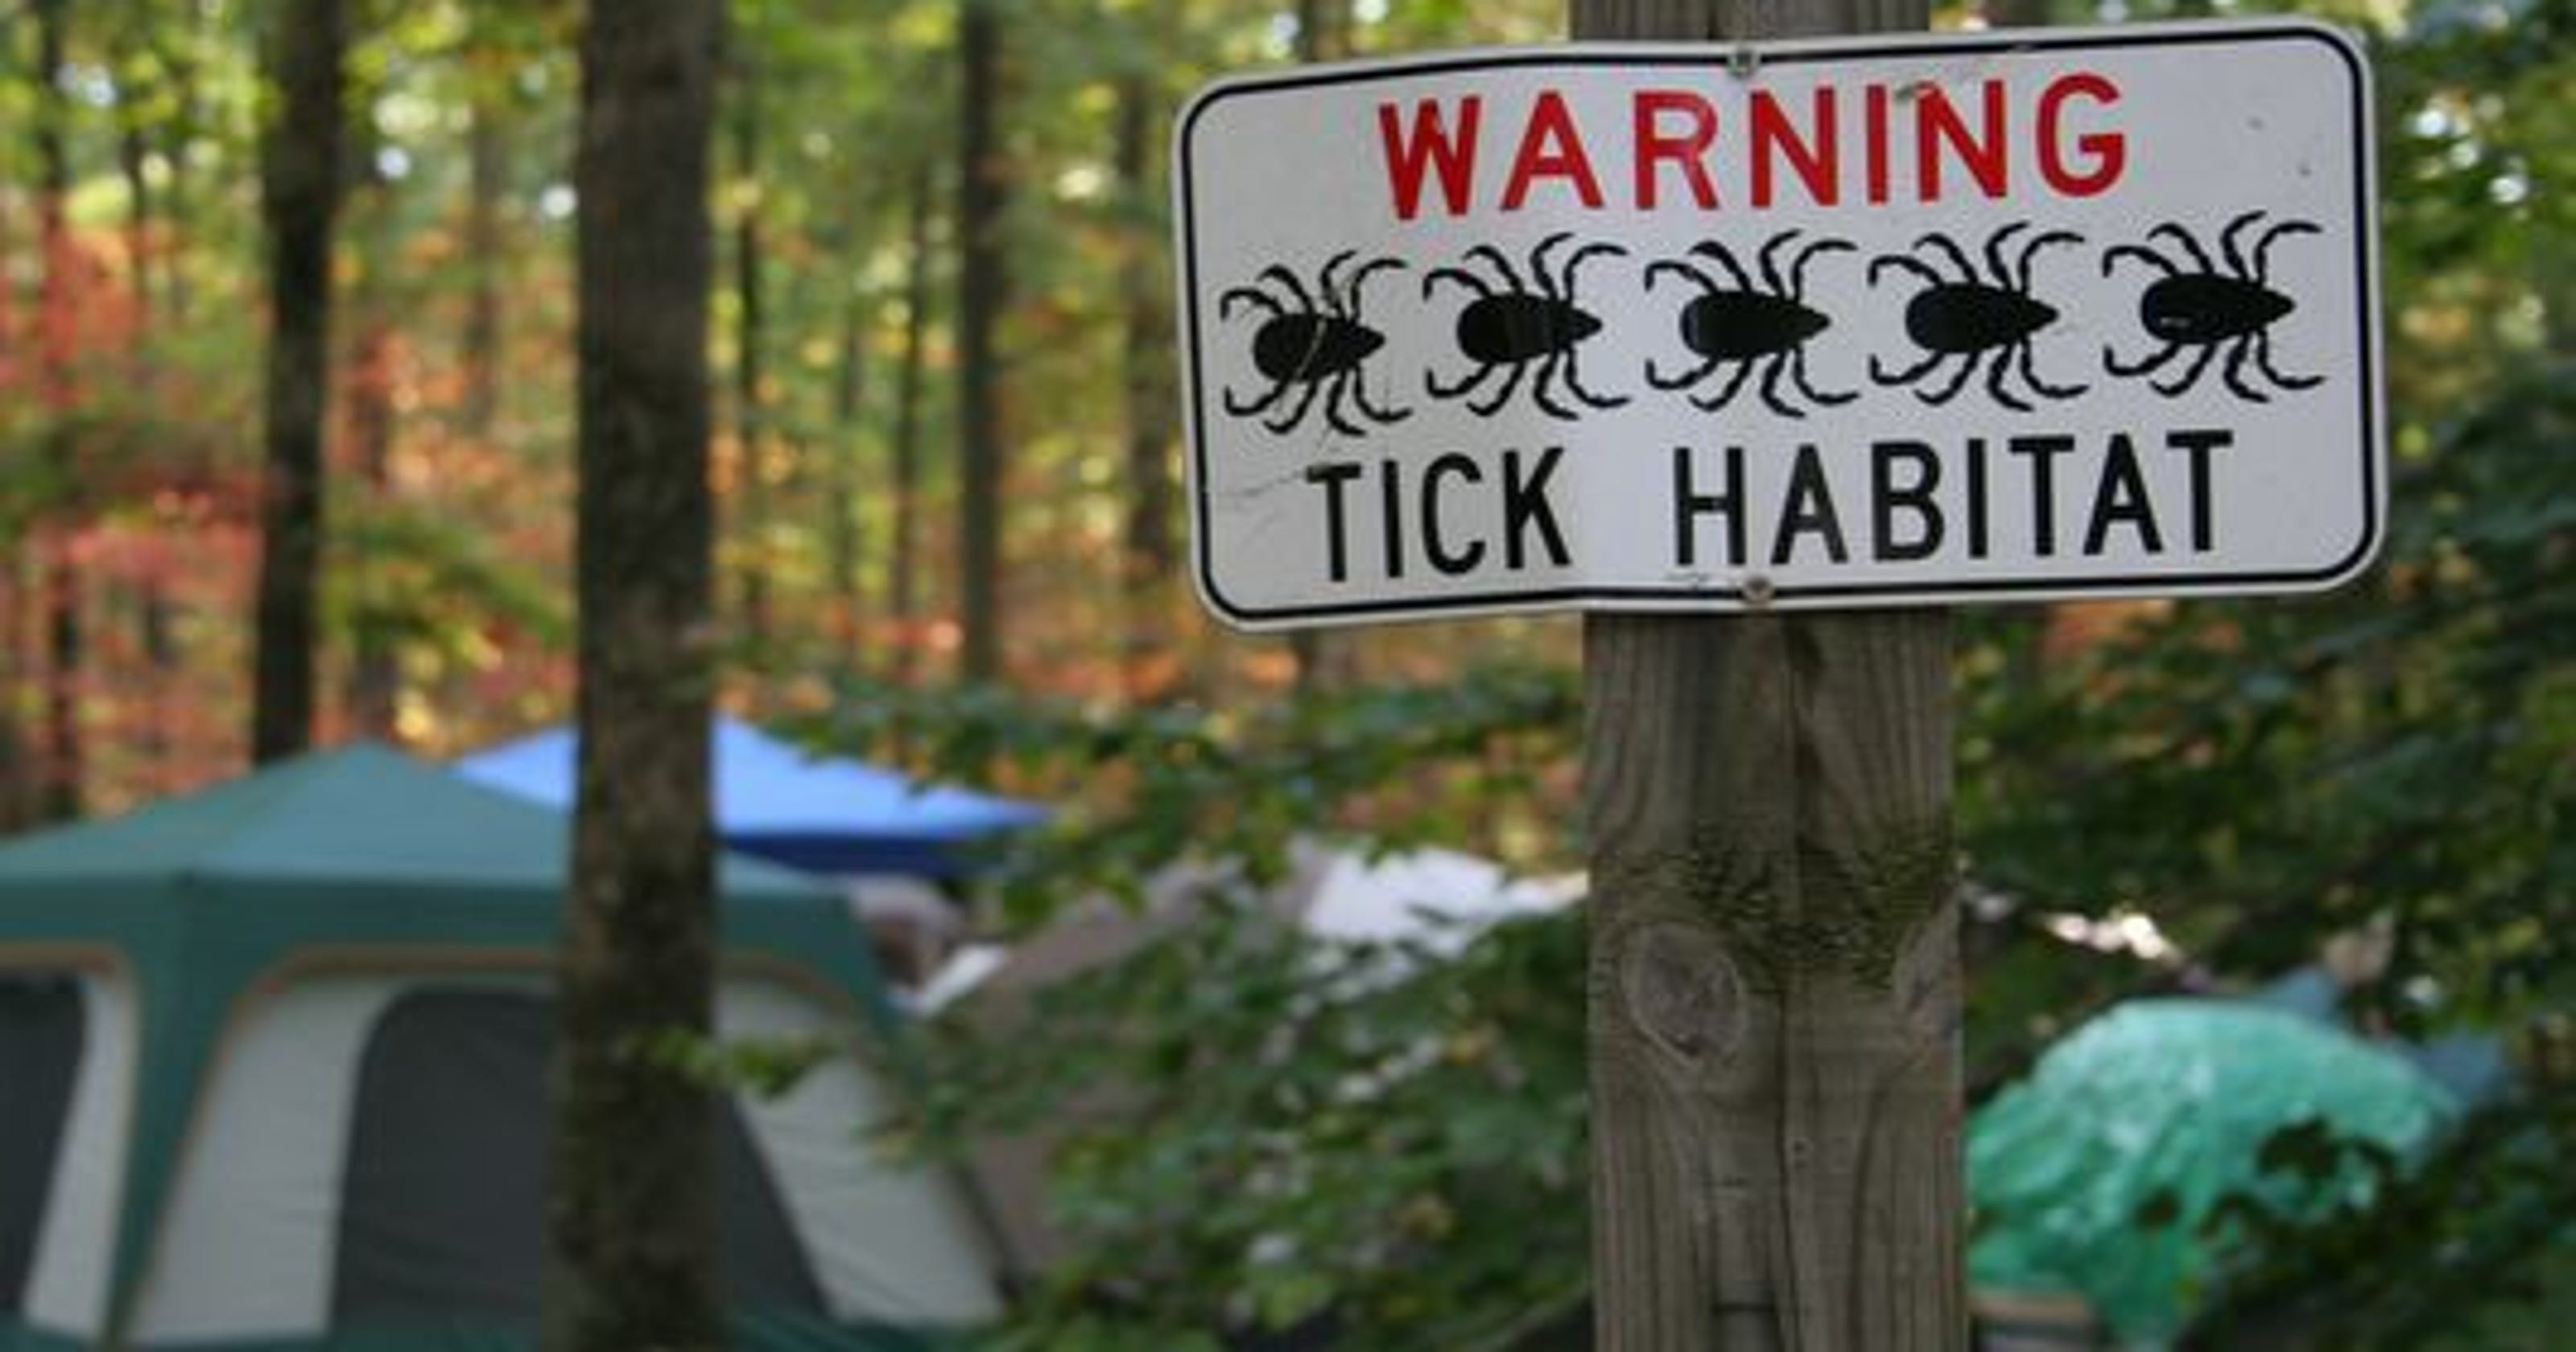 Big news for chronic Lyme disease sufferers